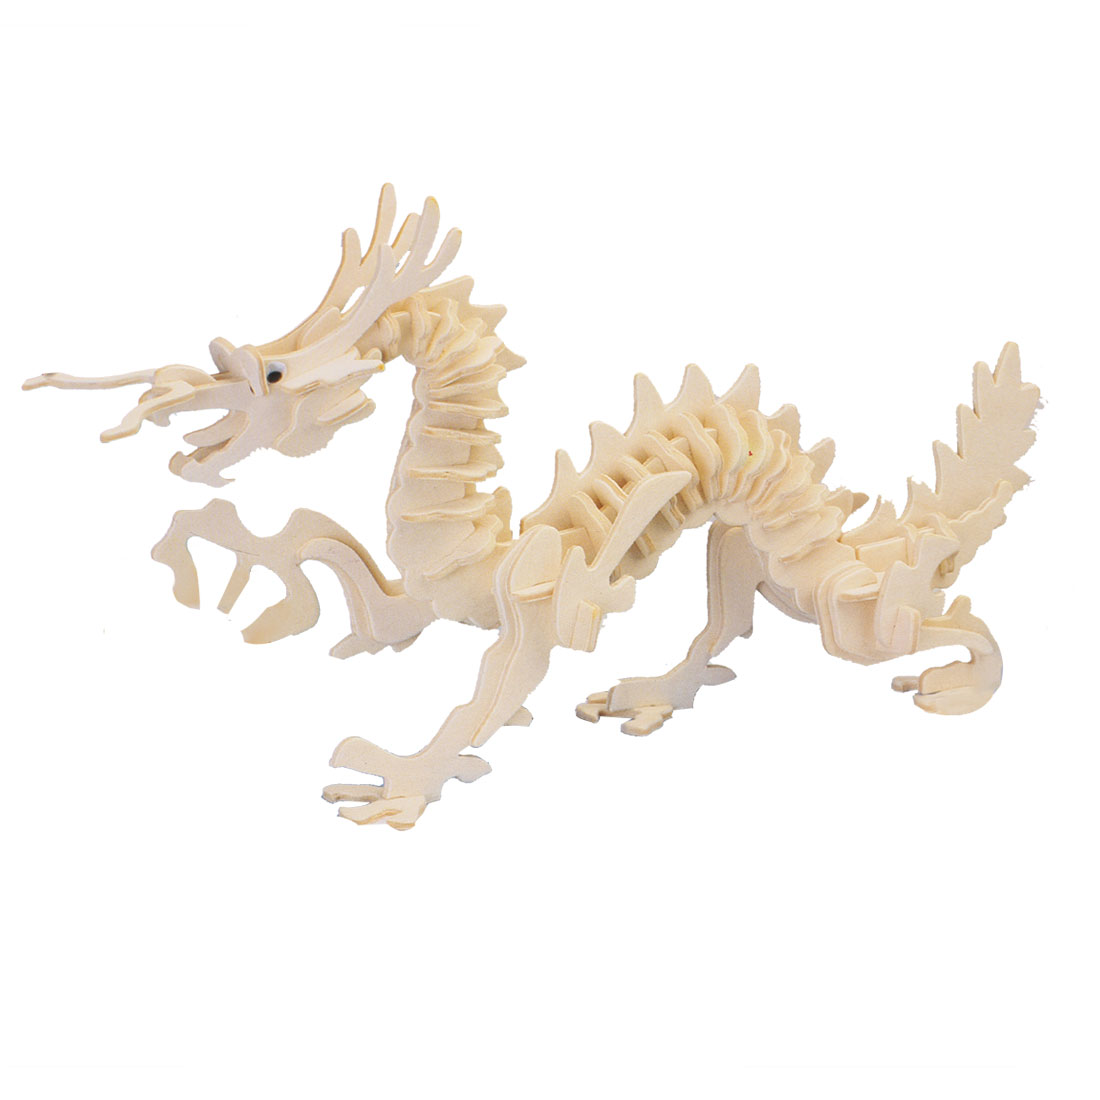 Self Assemble 3D Dragon Model DIY Toy Wooden Jigsaw Construction Kit by